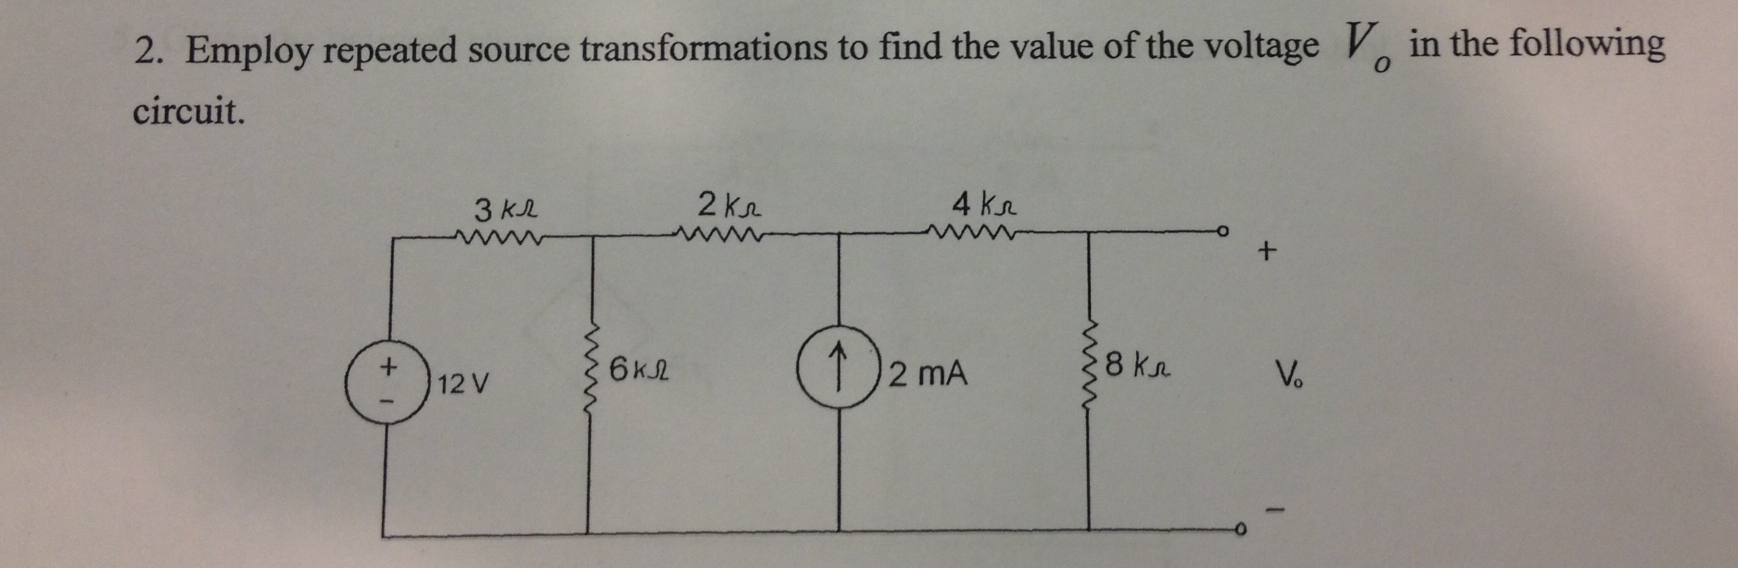 Employ repeated source transformations to find the